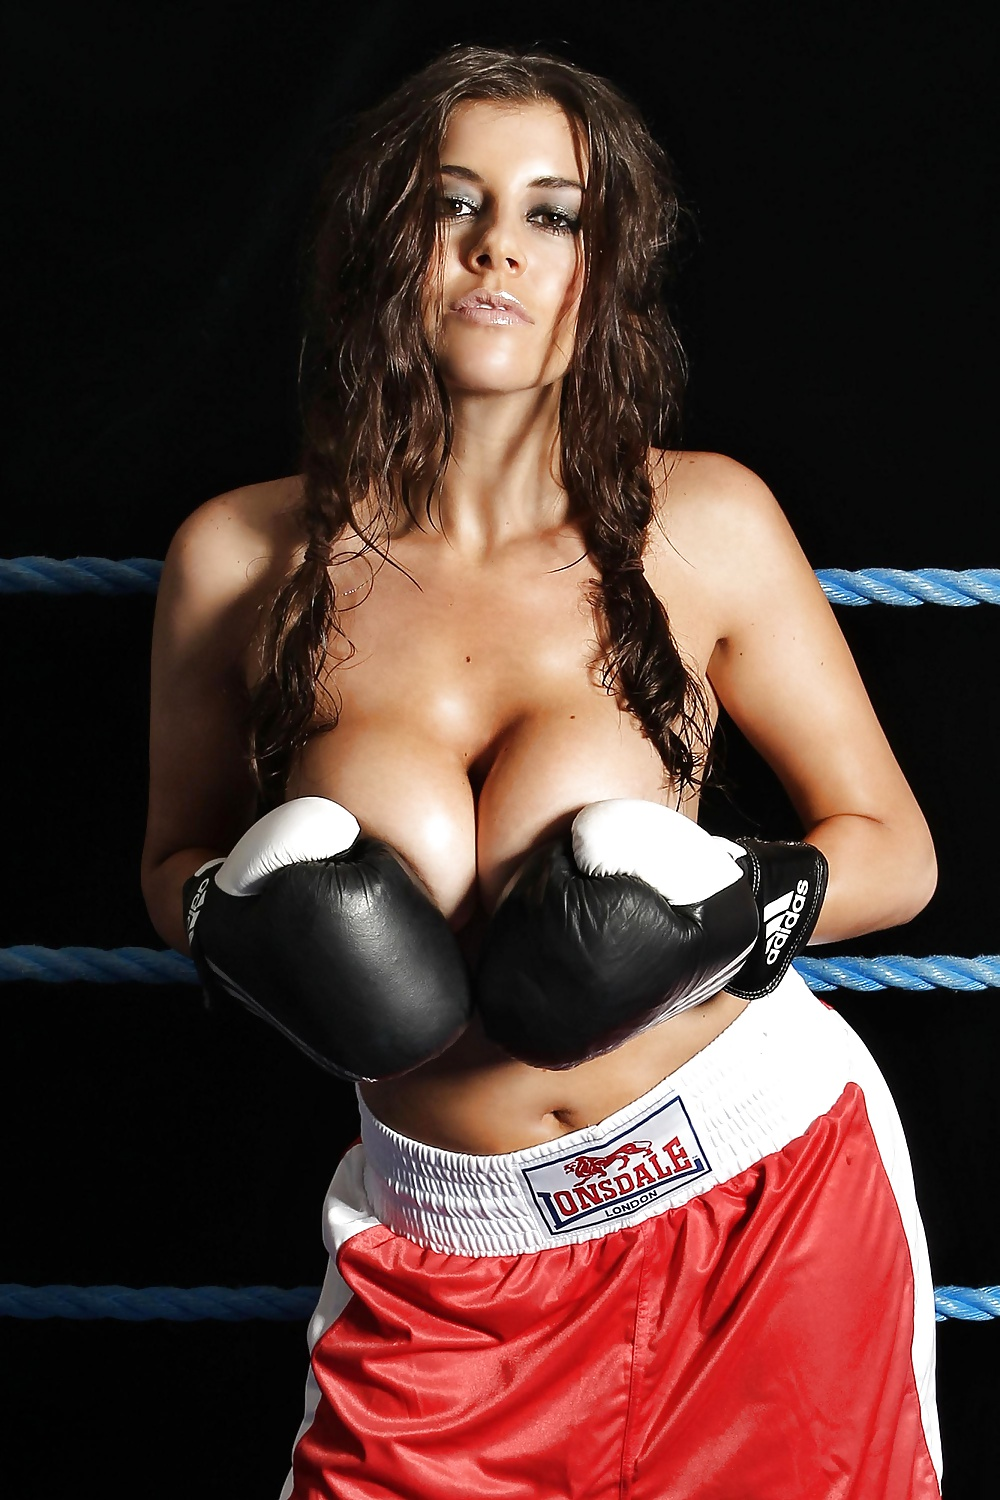 Woman naked ring boxing nude fit sexy adult gym hot boxer photos